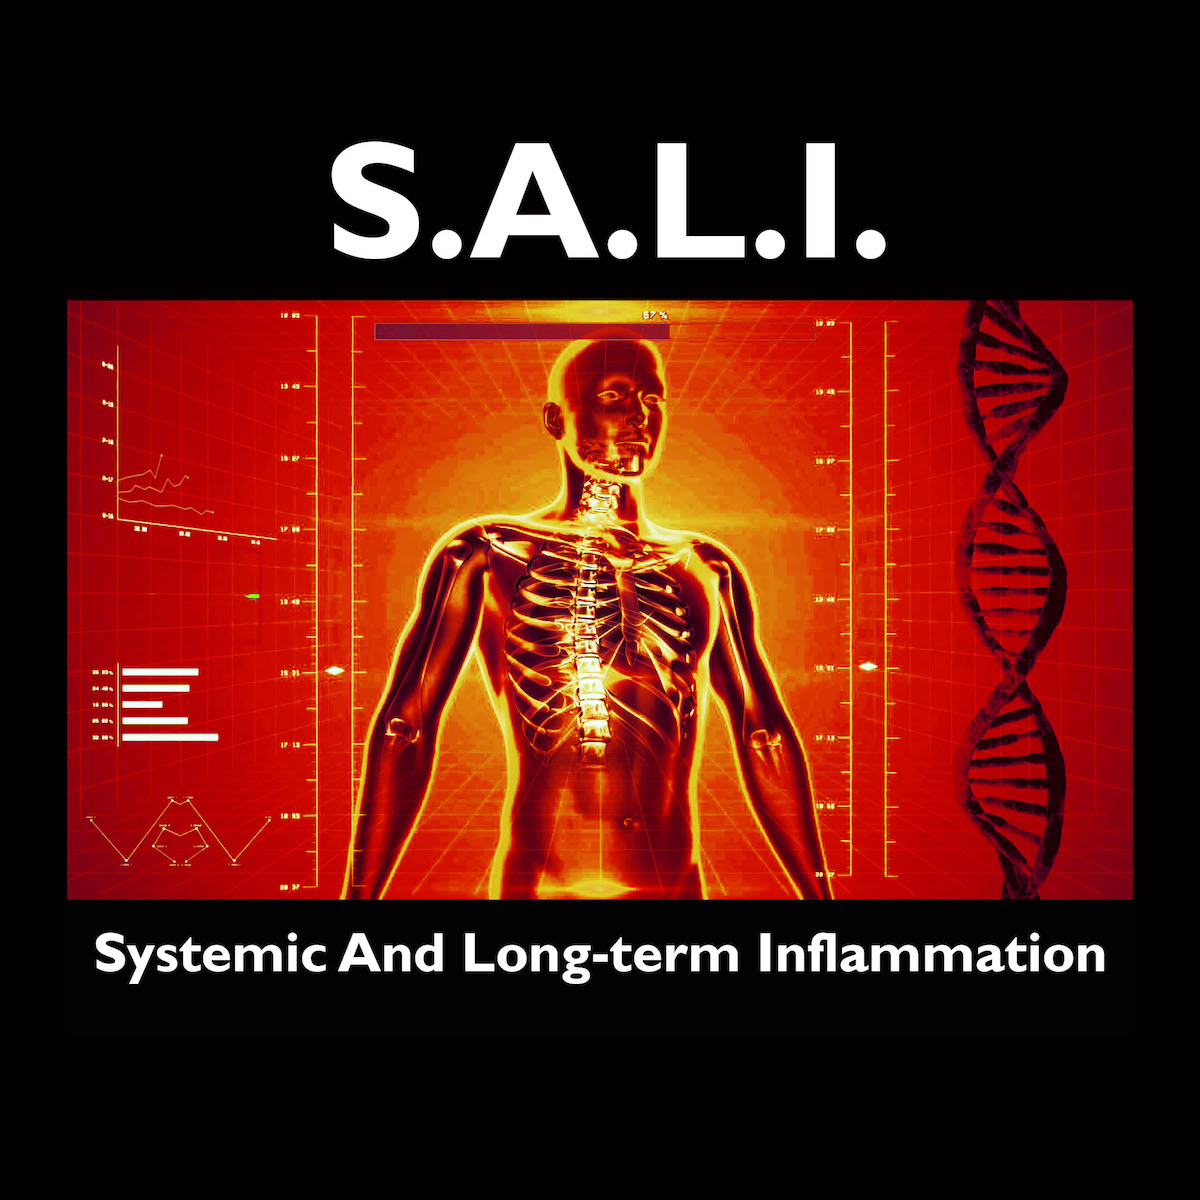 SALI systemic and longterm inflammation.jpg